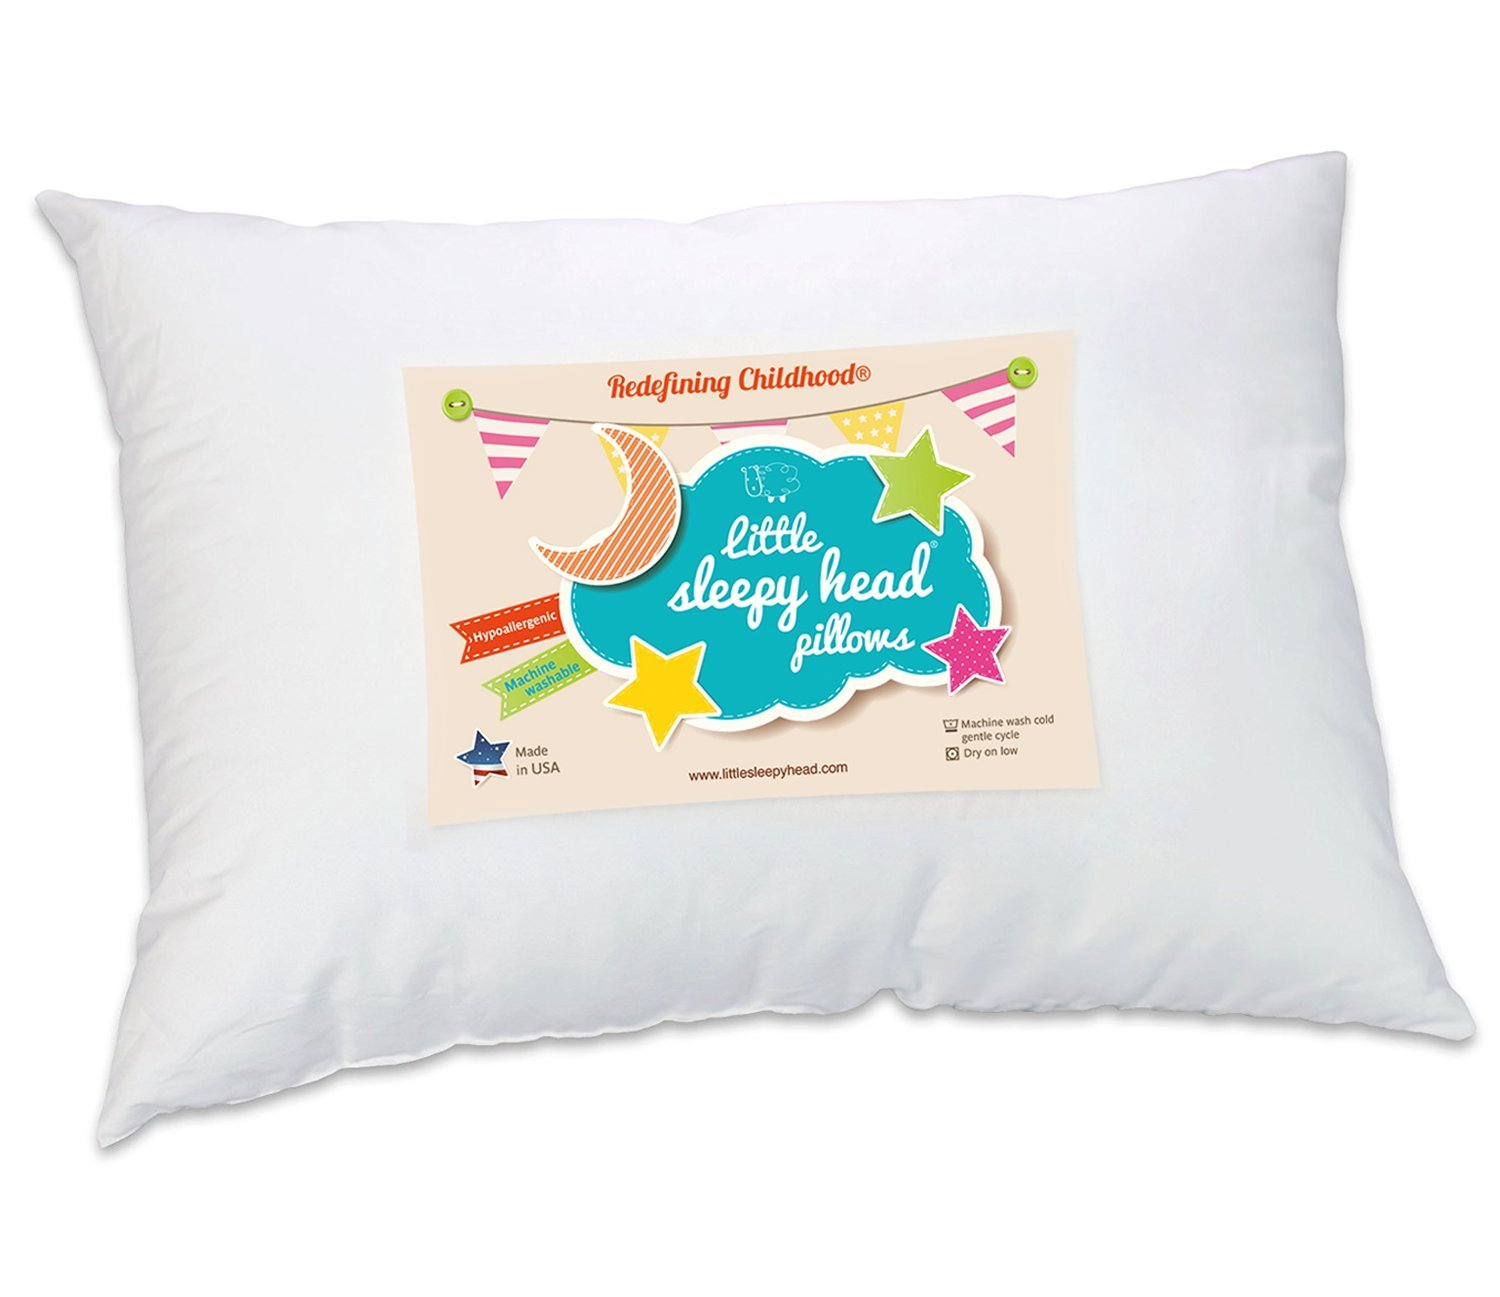 Toddler Pillow - Soft Hypoallergenic - Best Pillows for Kids! Better Neck Support and Sleeping! They Will Take a Better Nap in Bed, a Crib, or Even on the Floor at School! Makes Travel Comfier in a Car Seat or on an Airplane! Backed by Our Love Your Pillow